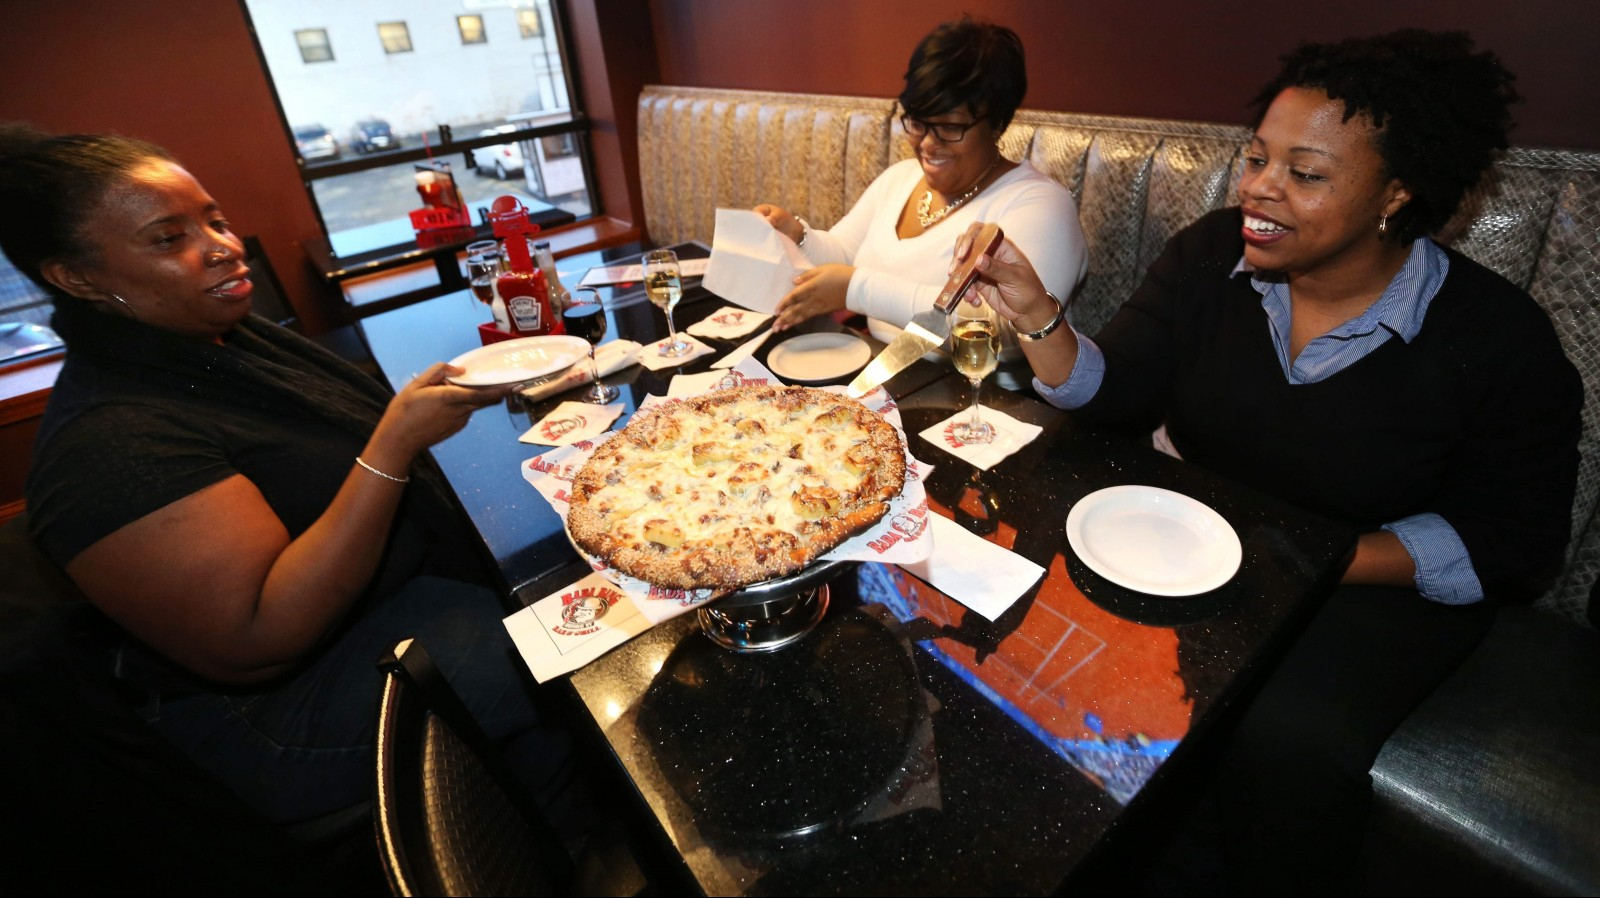 LaTonya Porter, left, of Buffalo, Shantey Brown, of Blasdell, and Stephaine Huston, of Niagara Falls, enjoy the steak and stuffed pepper pizza at Bada Bing. (Sharon Cantillon/Buffalo News)